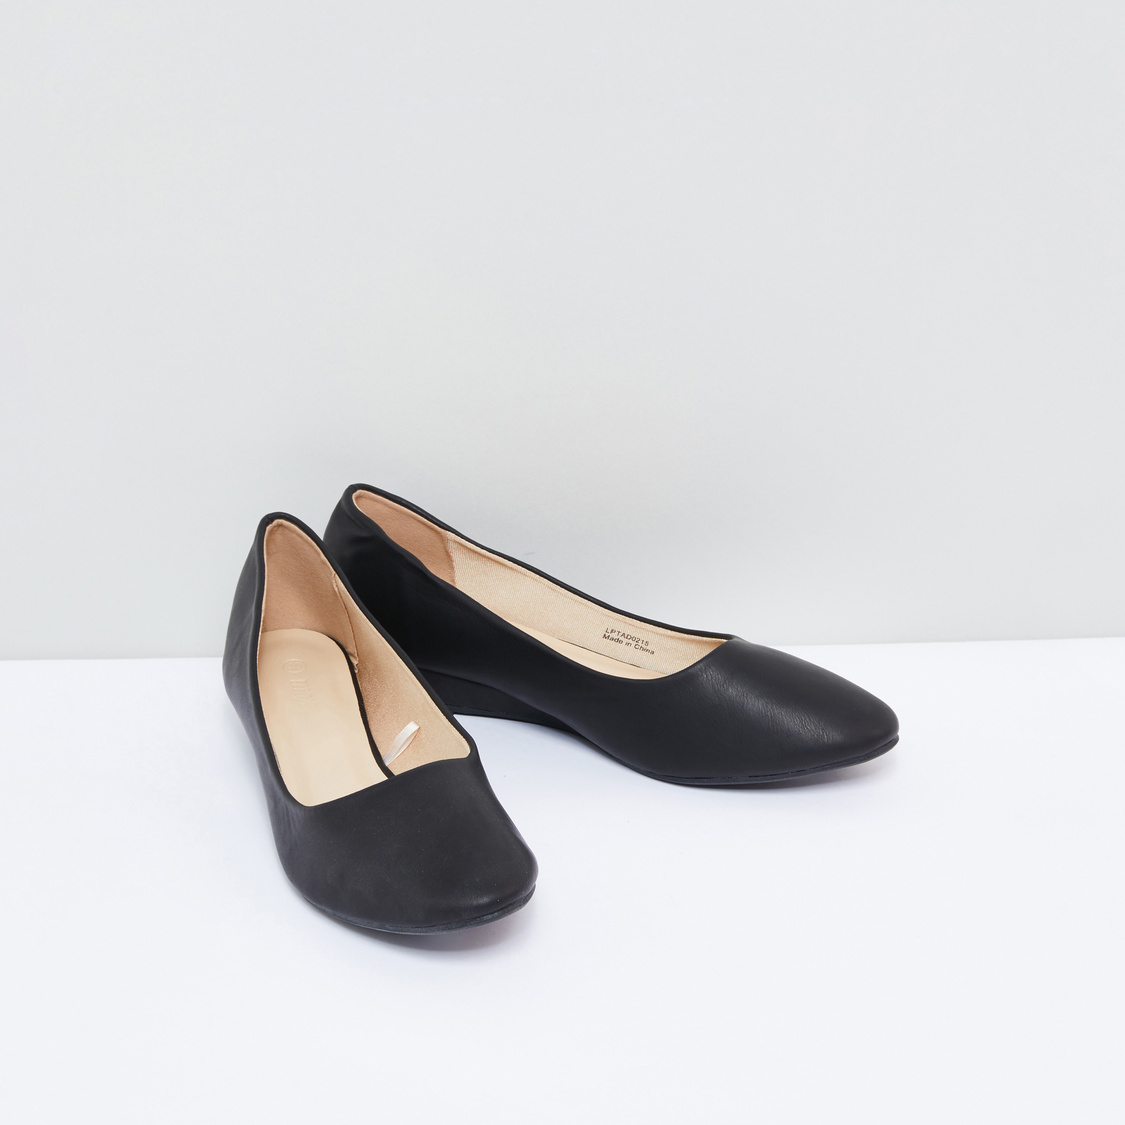 Slip-On Formal Shoes with Wedge Heels